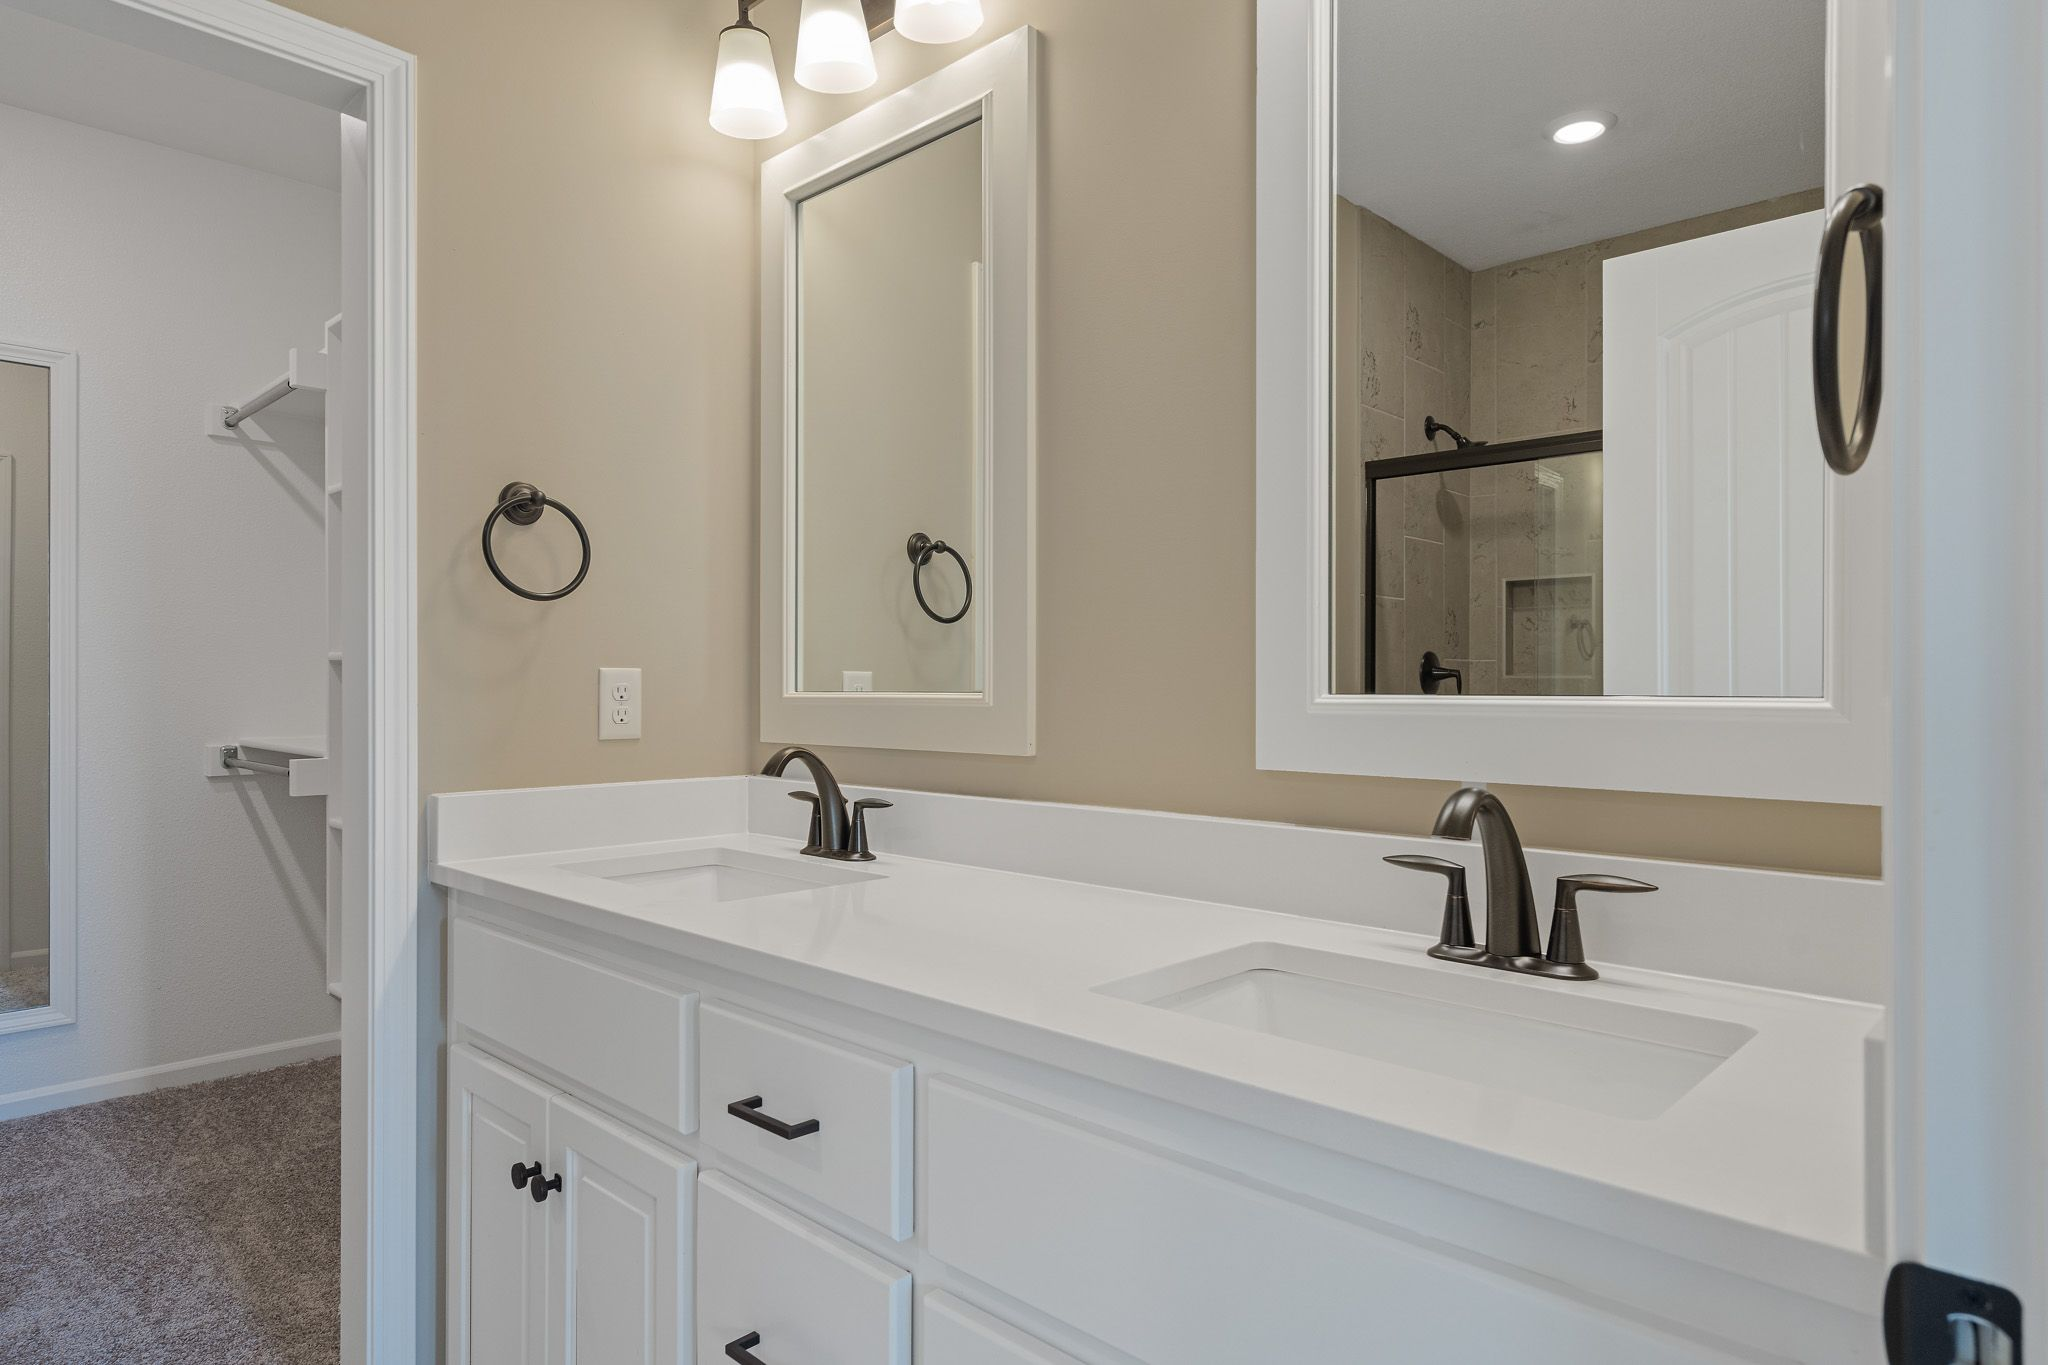 Bathroom featured in the Westport - Care Free By Summit Homes in Kansas City, KS